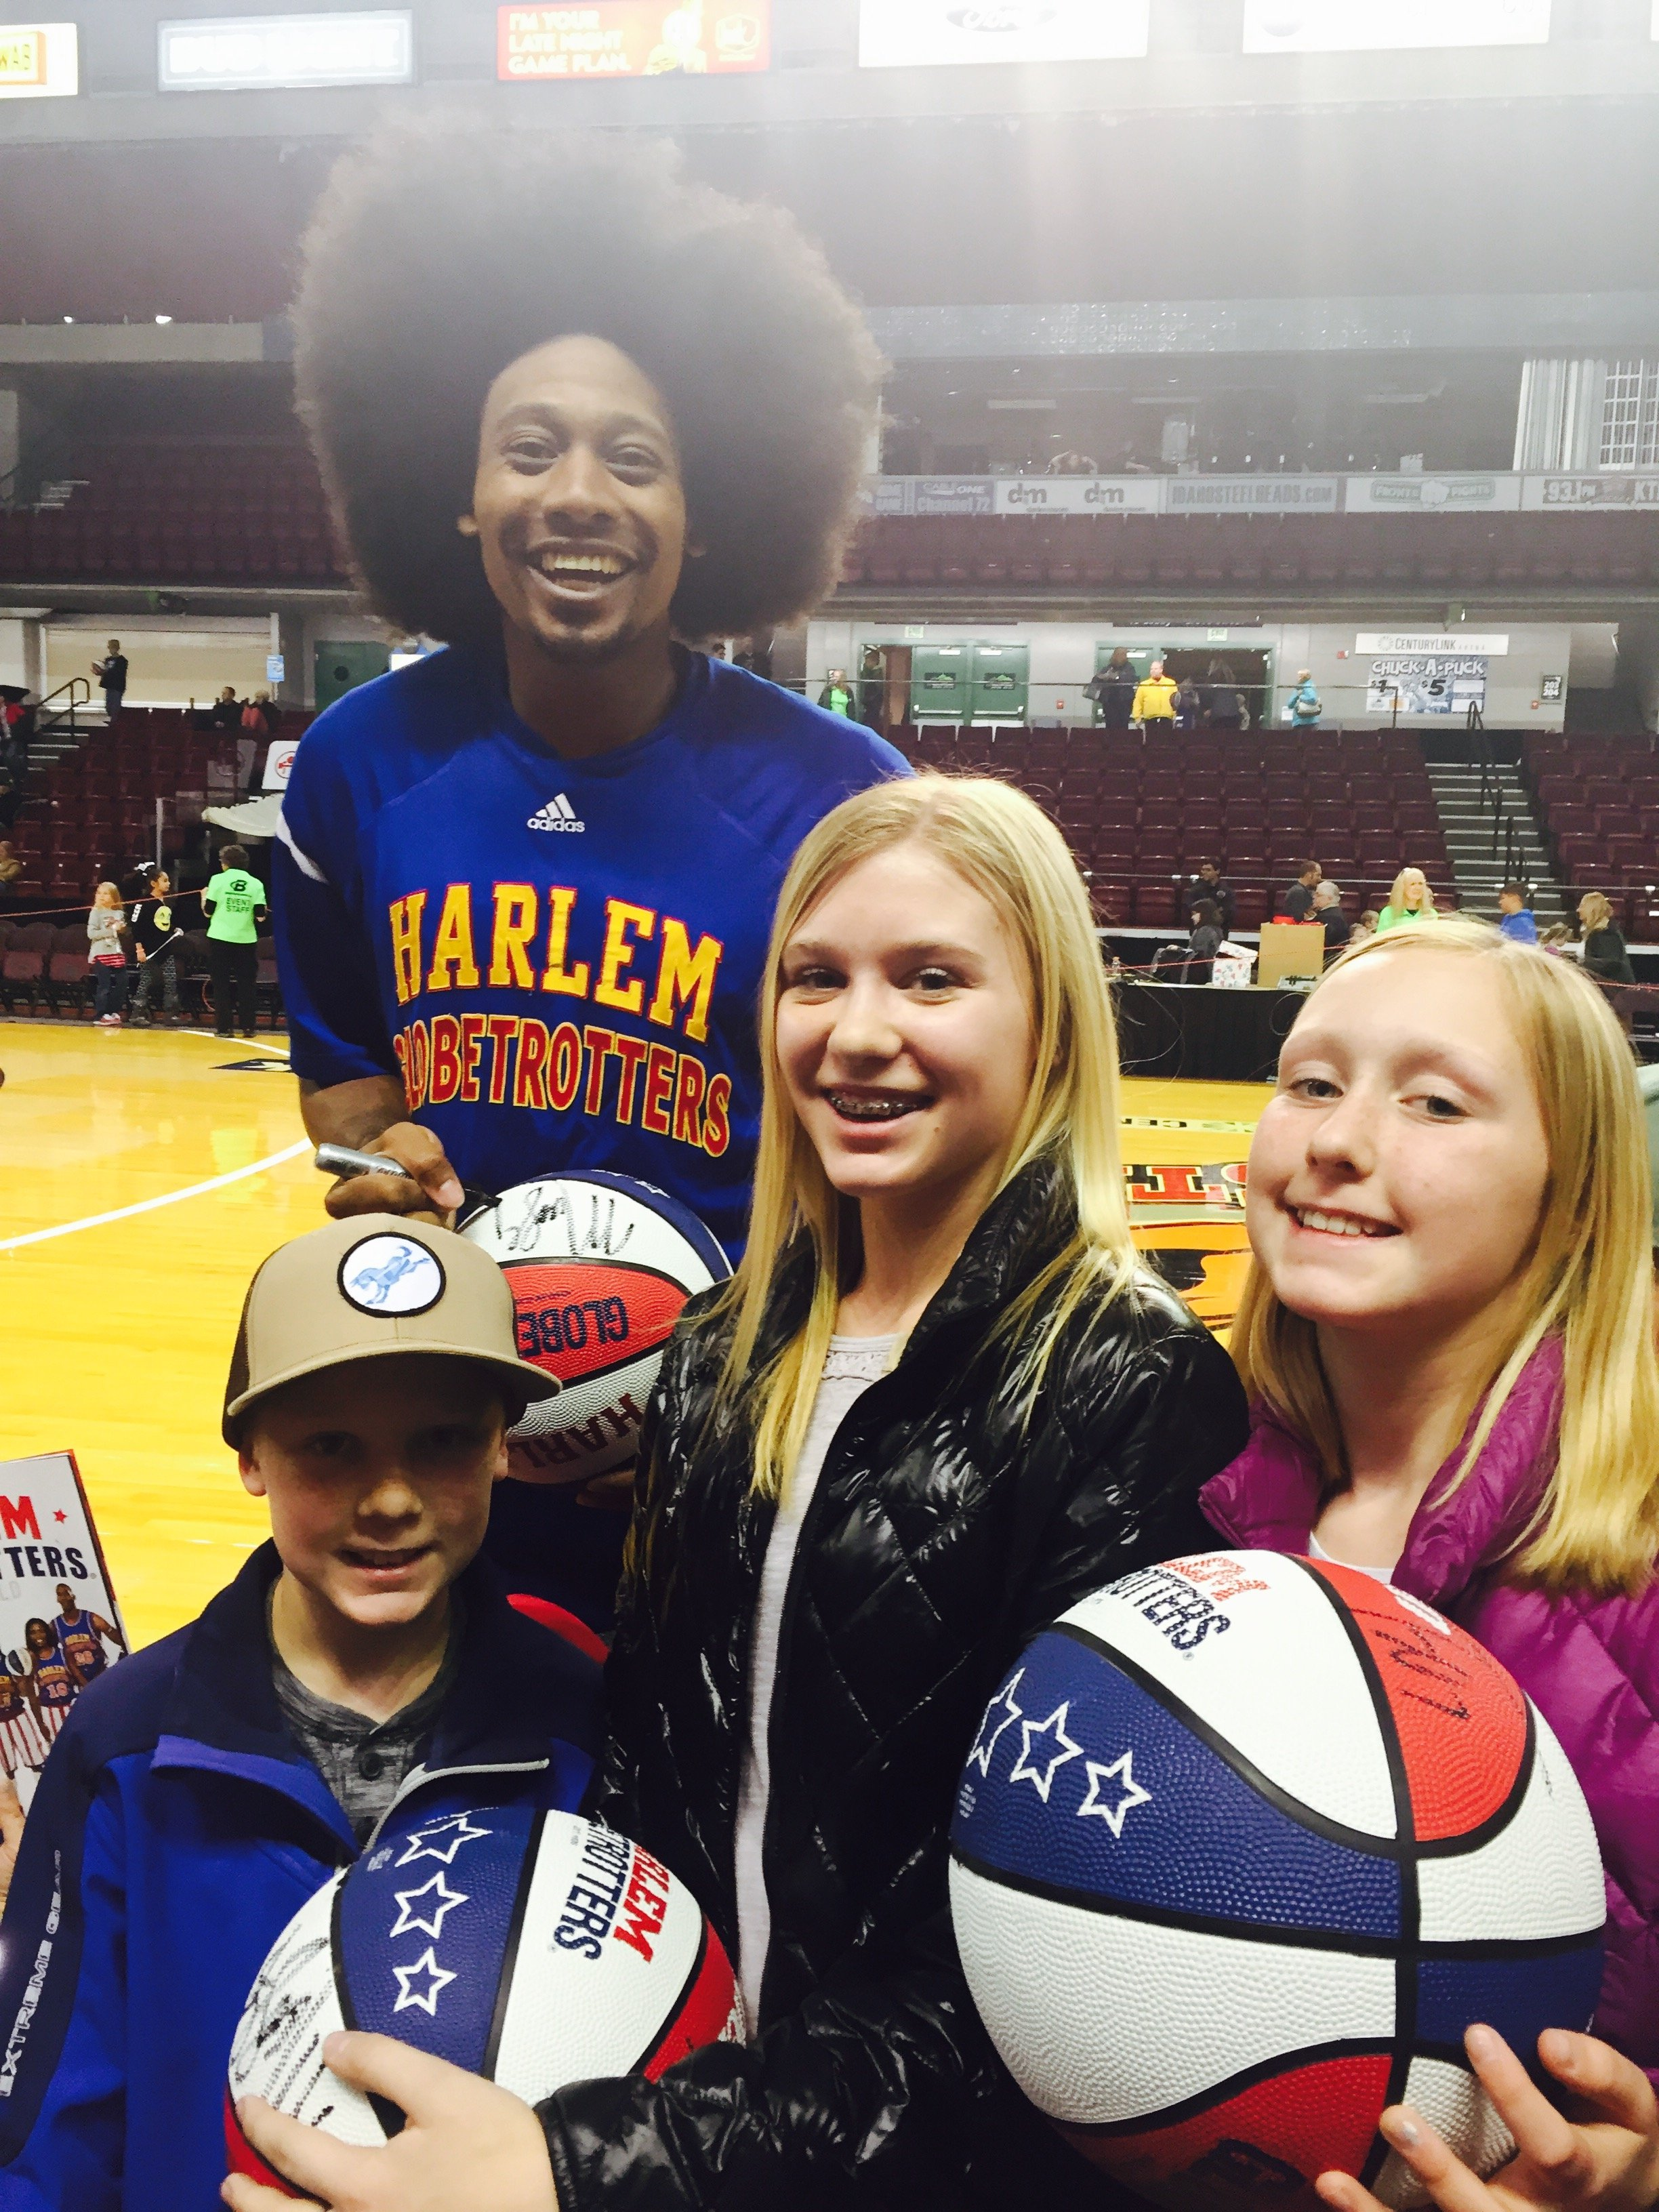 After the game, Globetrotter stars will sign autographs and take photos with fans.